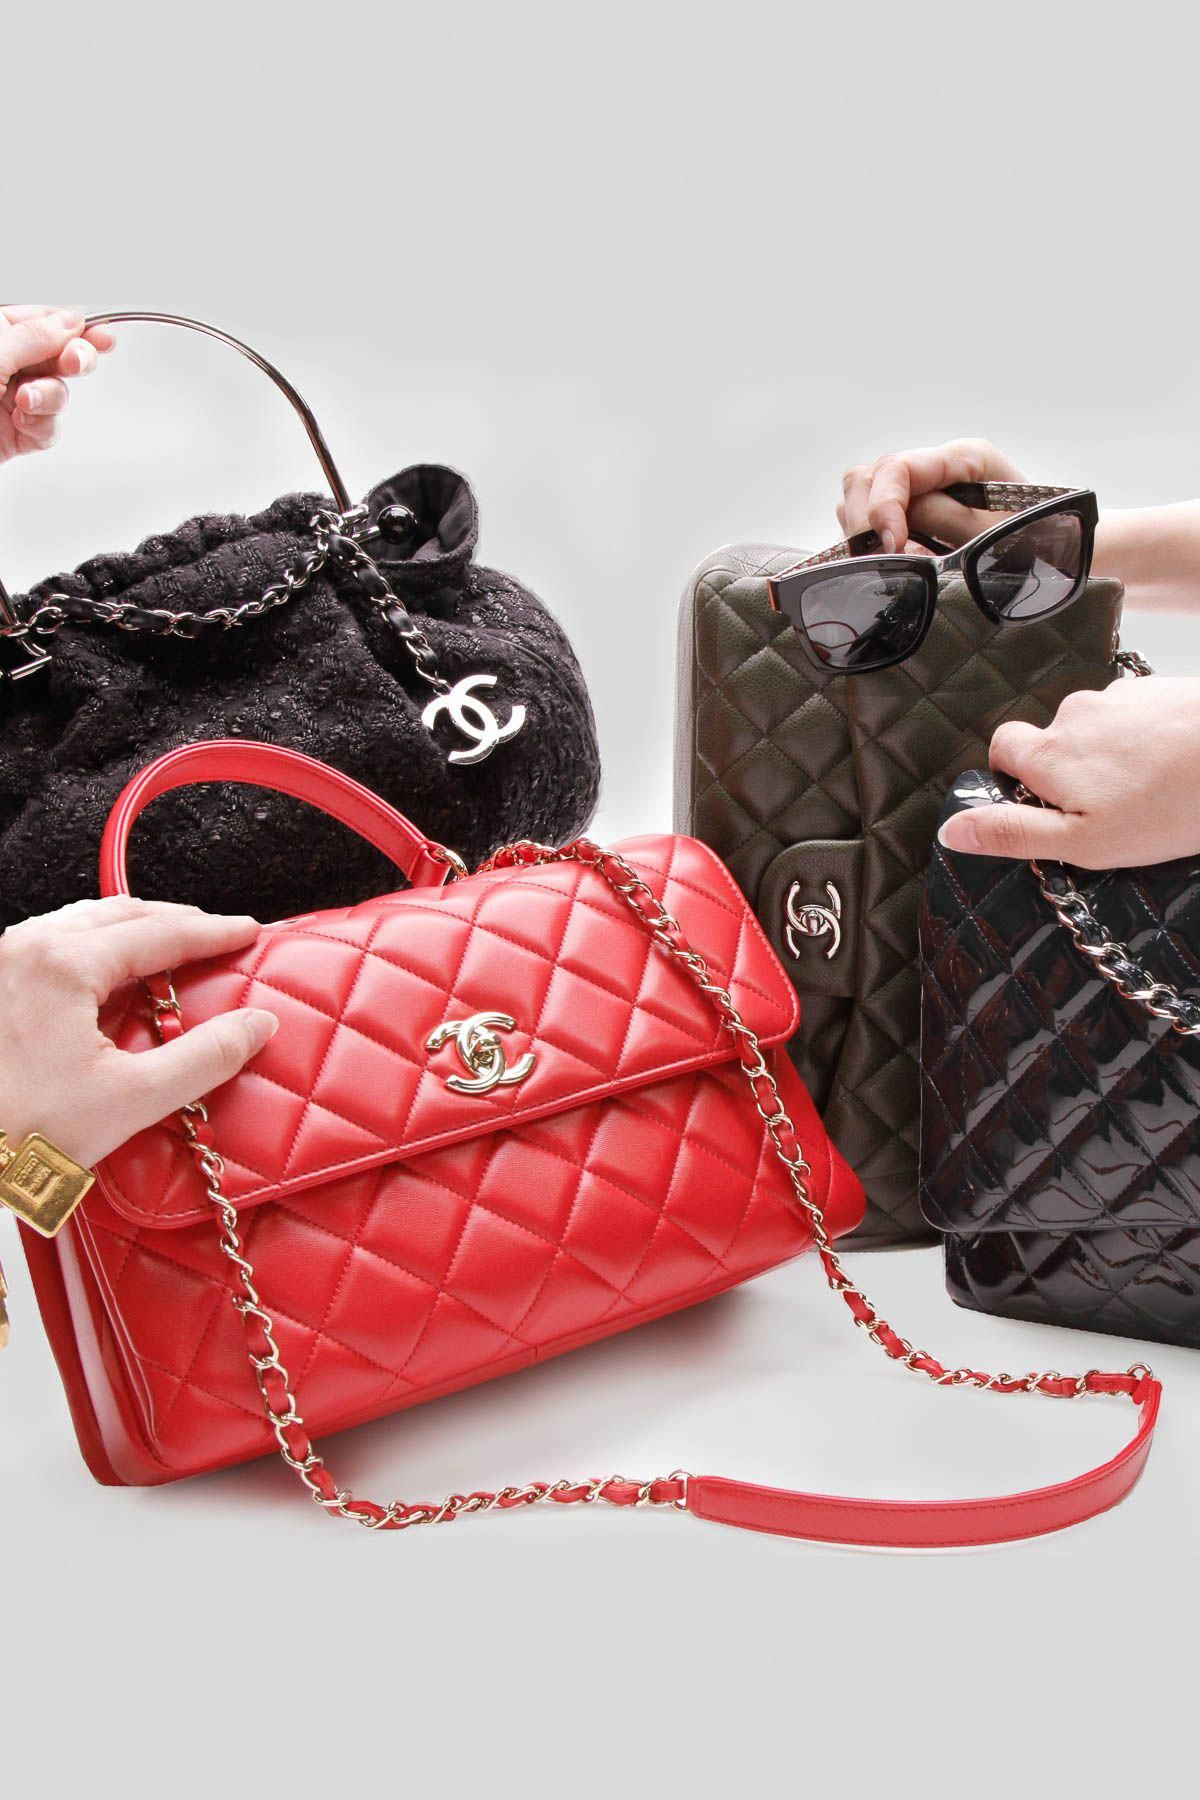 feb6285f8f6 Sale! Up to 75% OFF! Shop at Stylizio for women s and men s designer  handbags